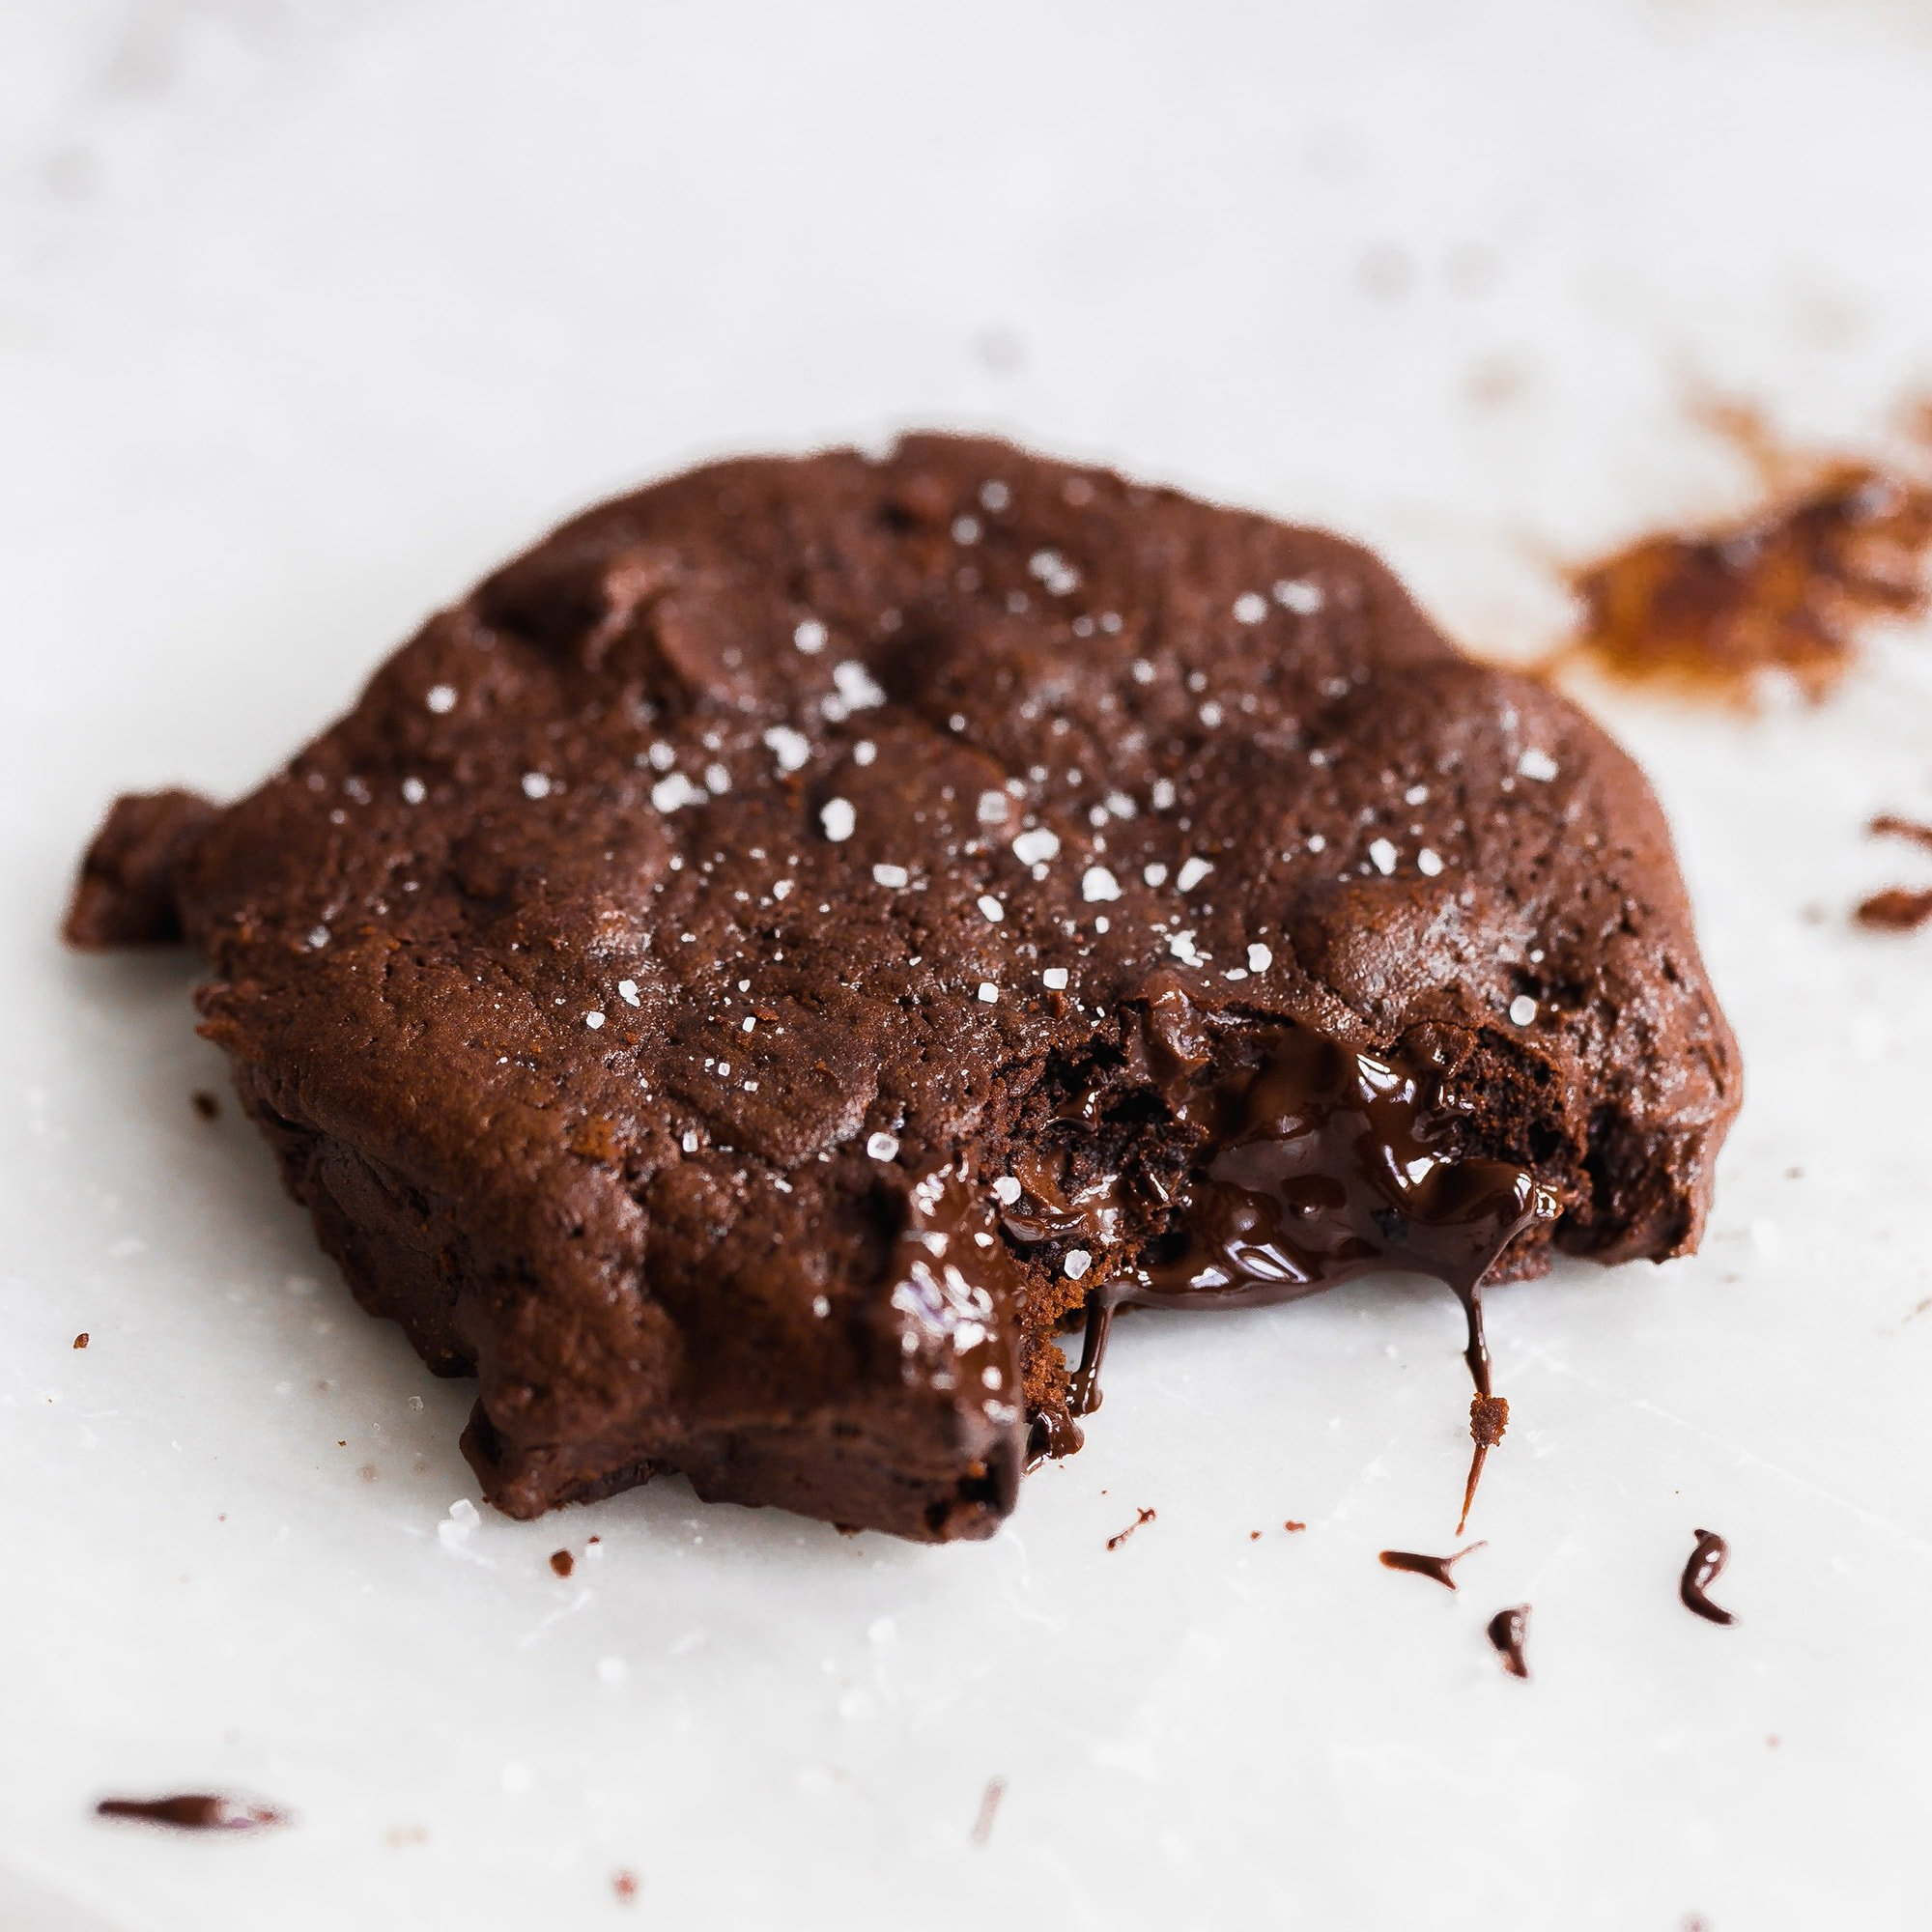 Soft Batch Double Chocolate Cookies are sinfully thick, rich, and gooey and loaded with an almost obscene amount of chocolate!